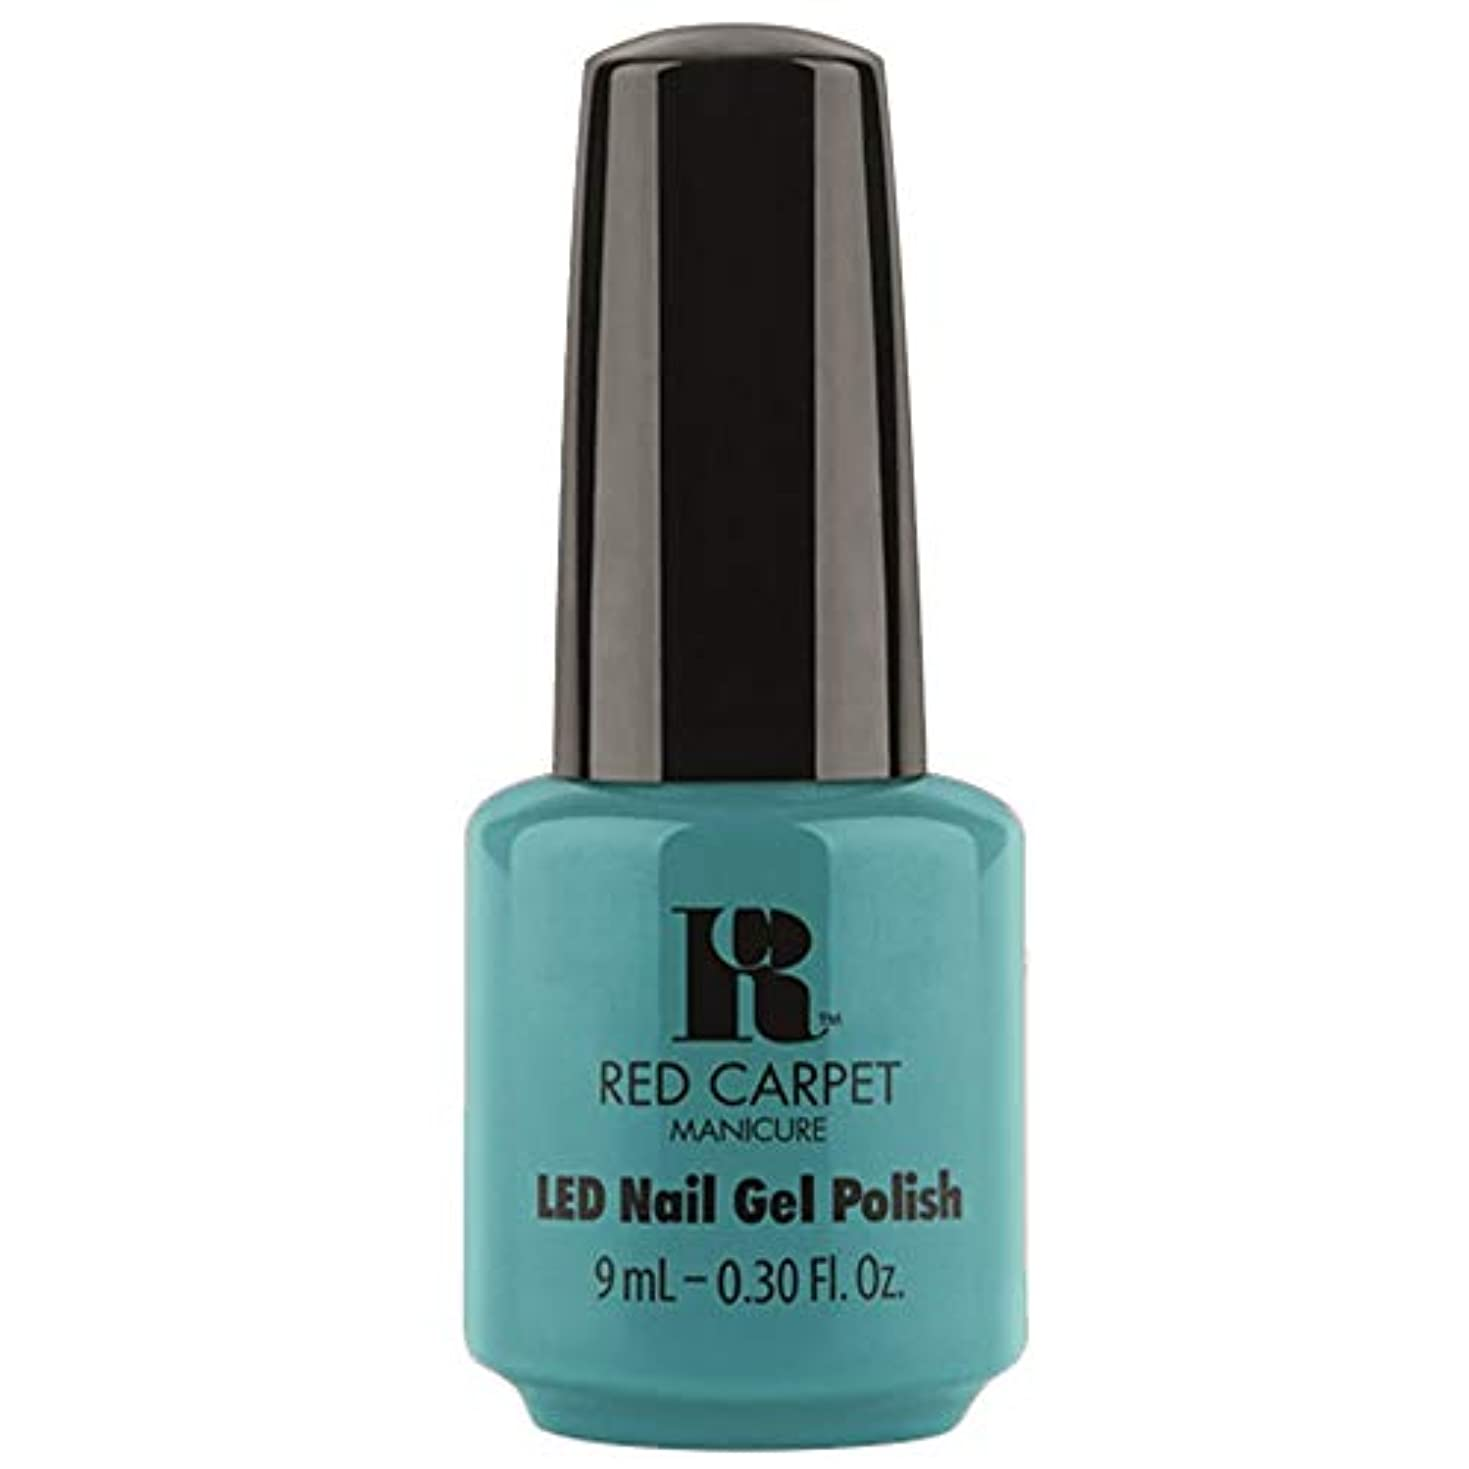 Red Carpet Manicure - LED Nail Gel Polish - Poolside Fling - 0.3oz / 9ml